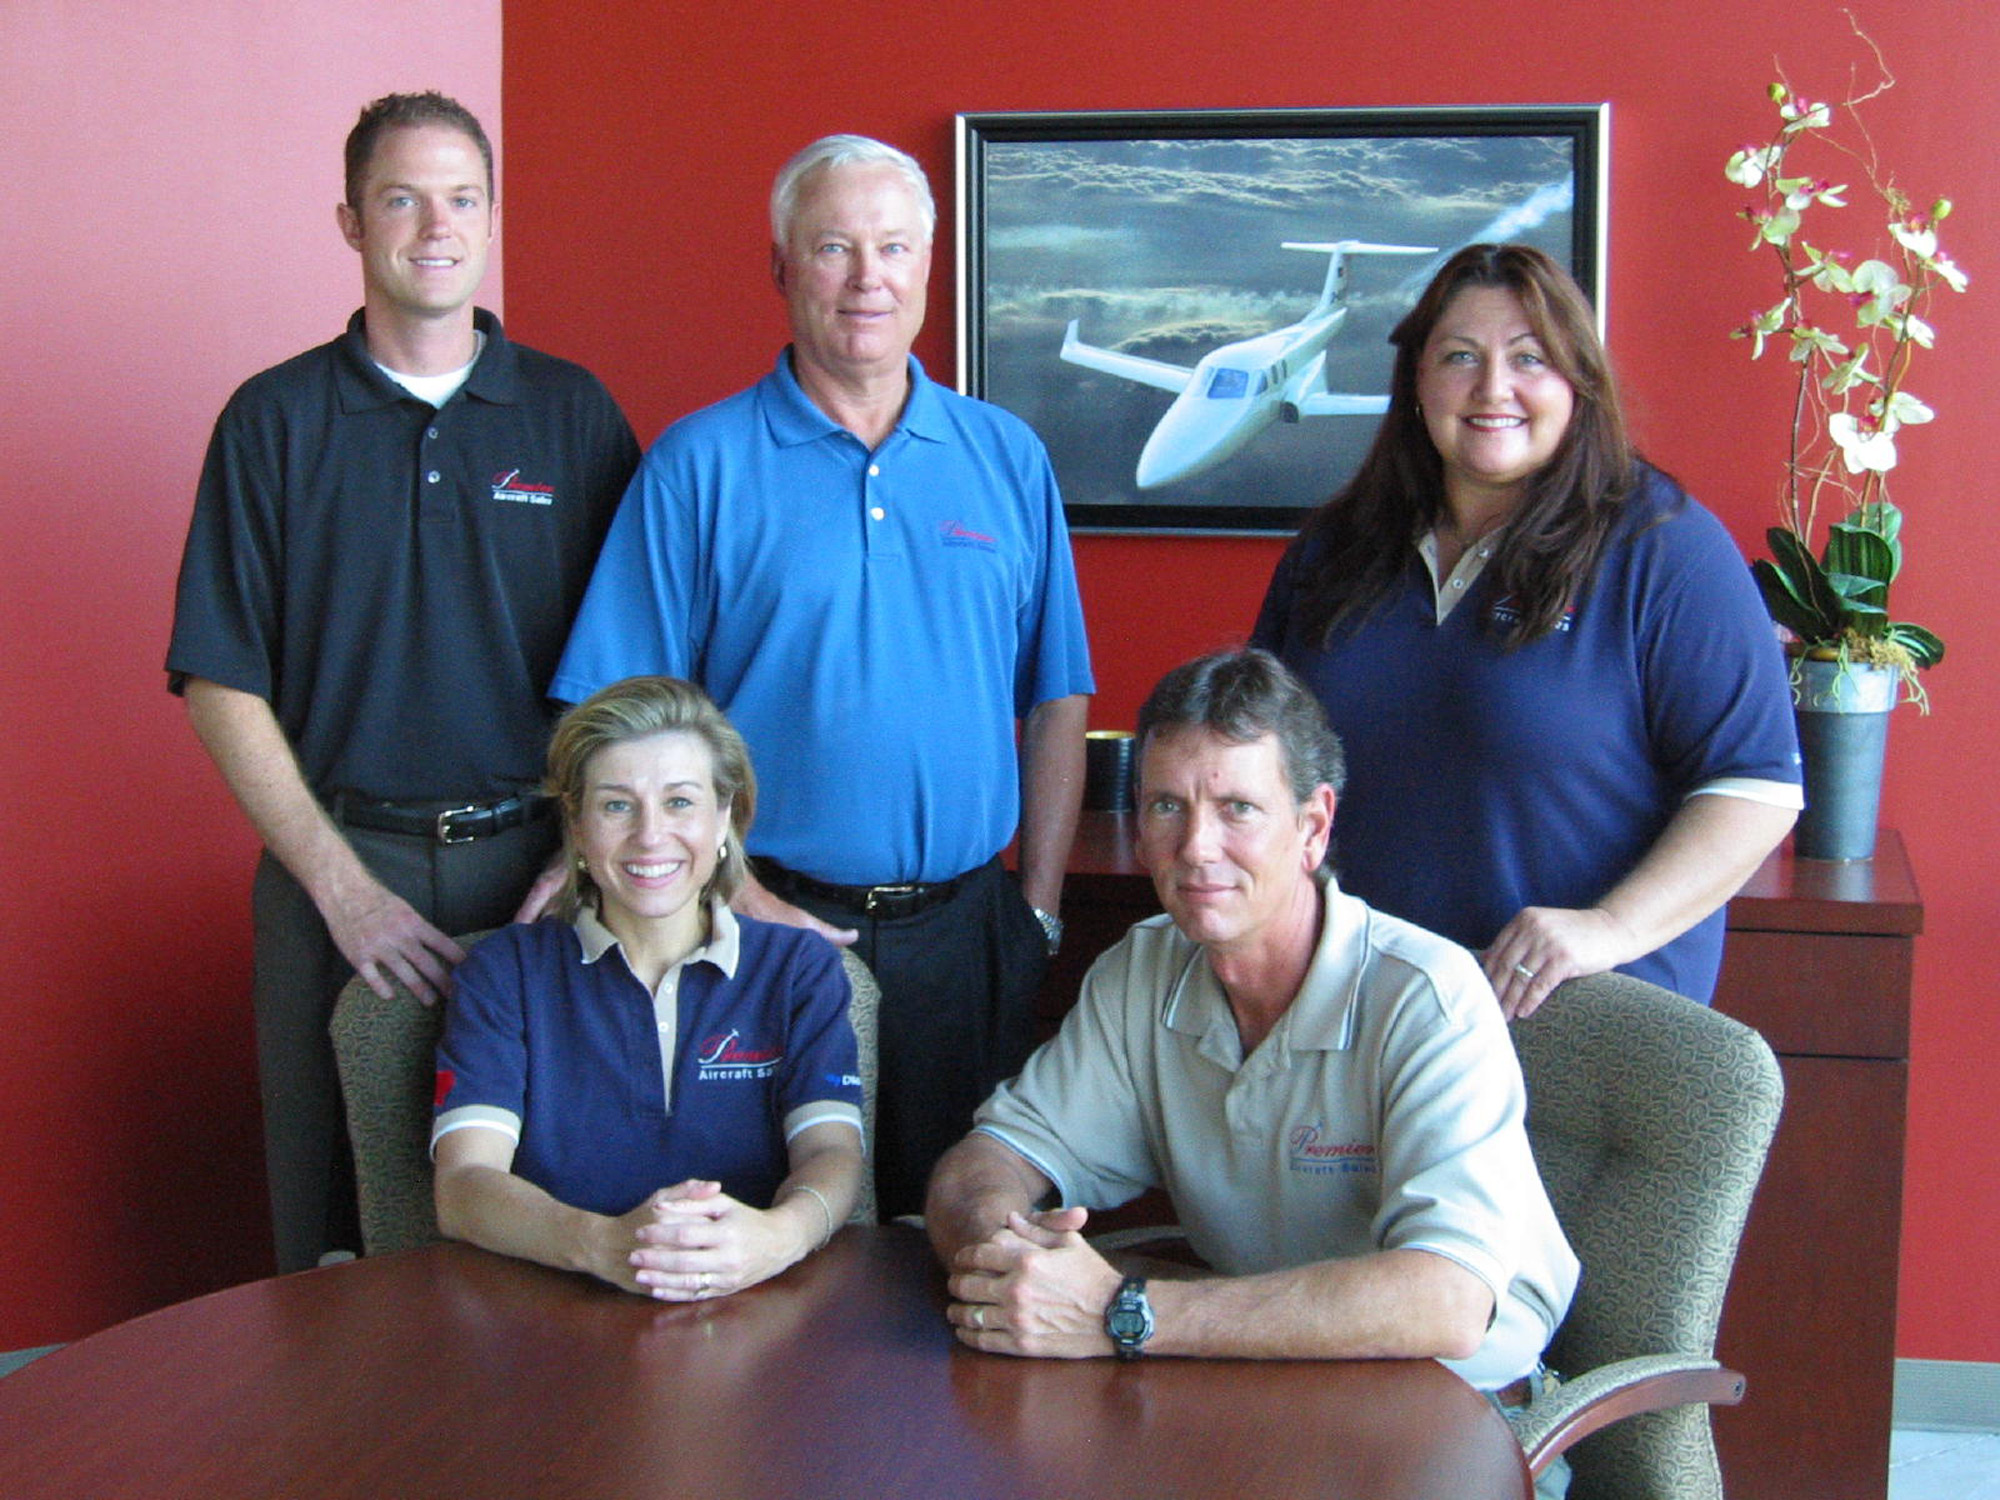 Customer Satisfaction is Job One at Premier Aircraft Sales